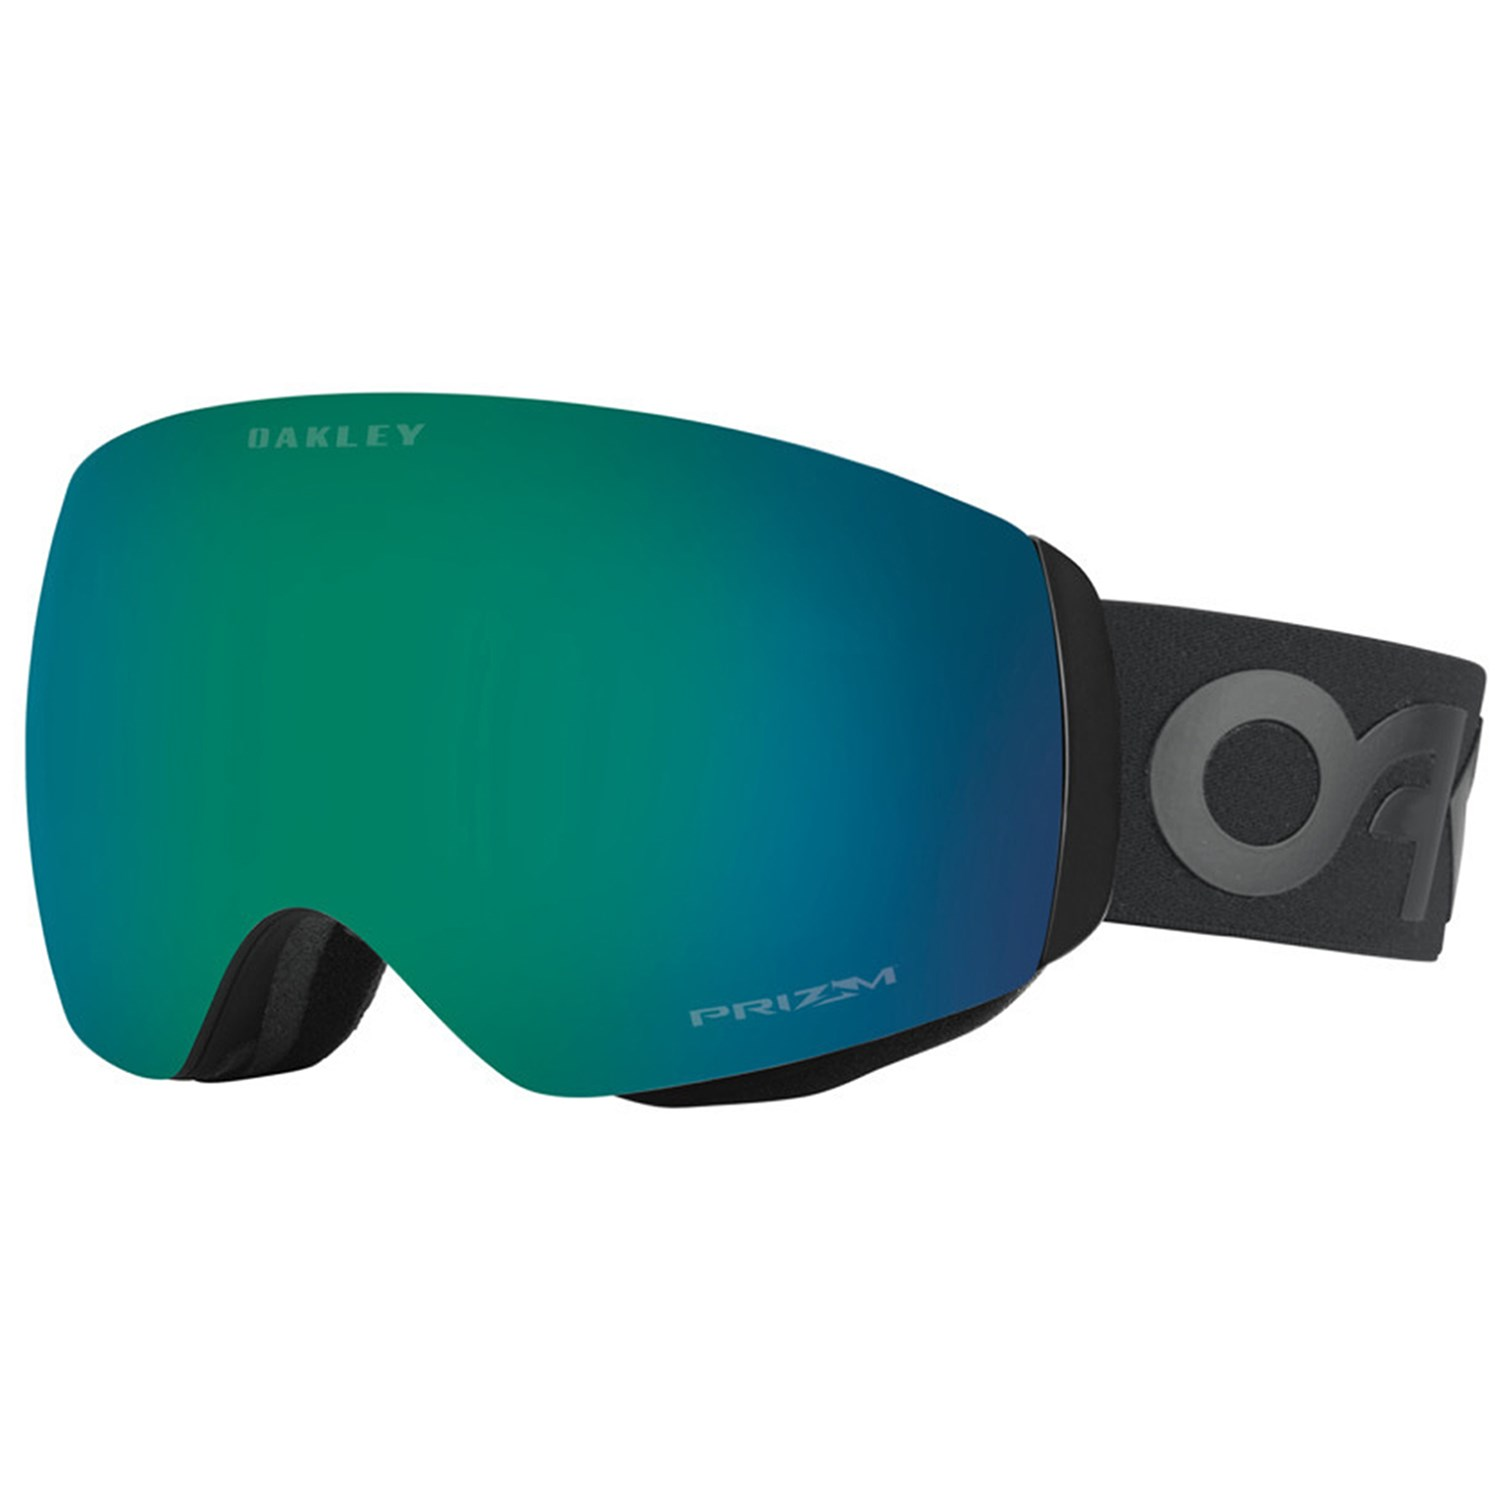 5405dade00 Oakley Flight Deck XM Goggles